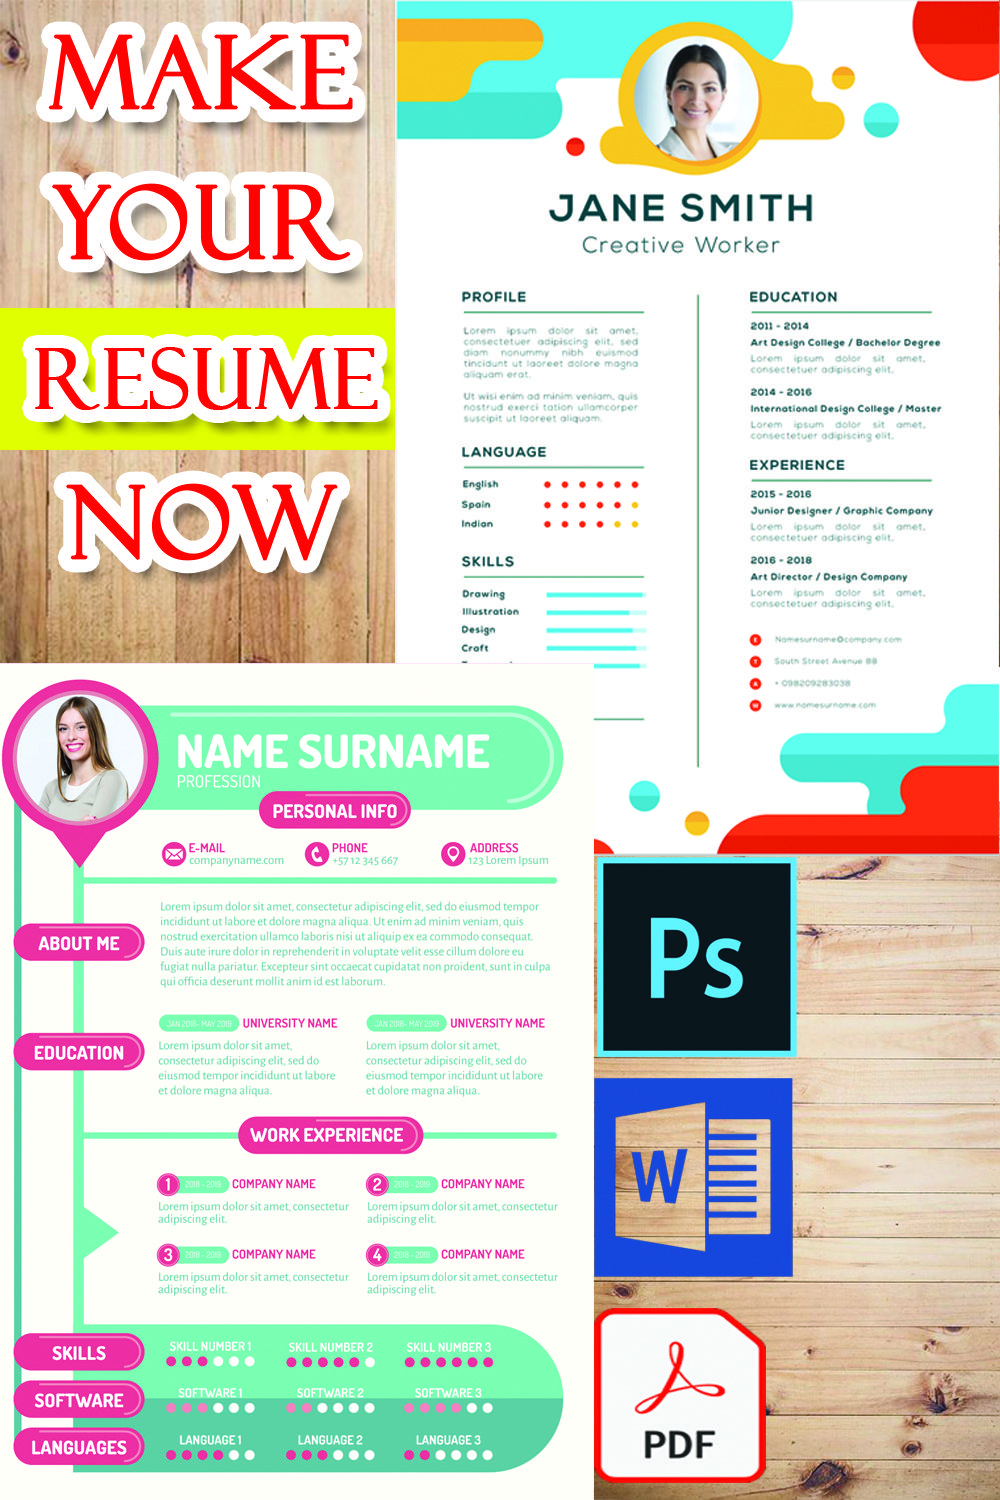 now you can now apply for a job and making your resume i